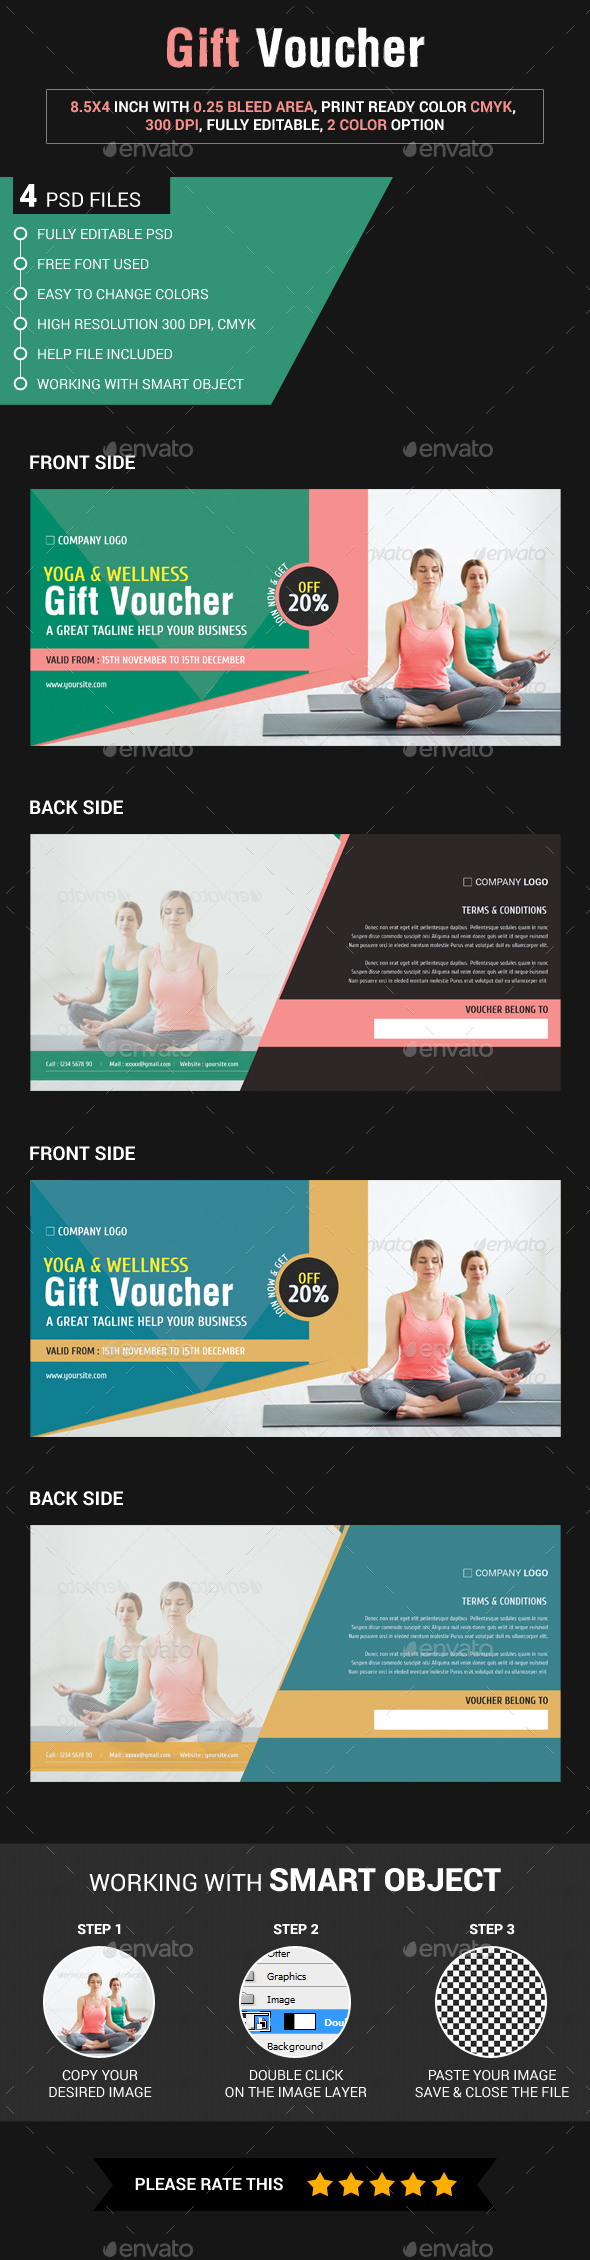 Yoga Gift Voucher - Loyalty Cards Cards & Invites